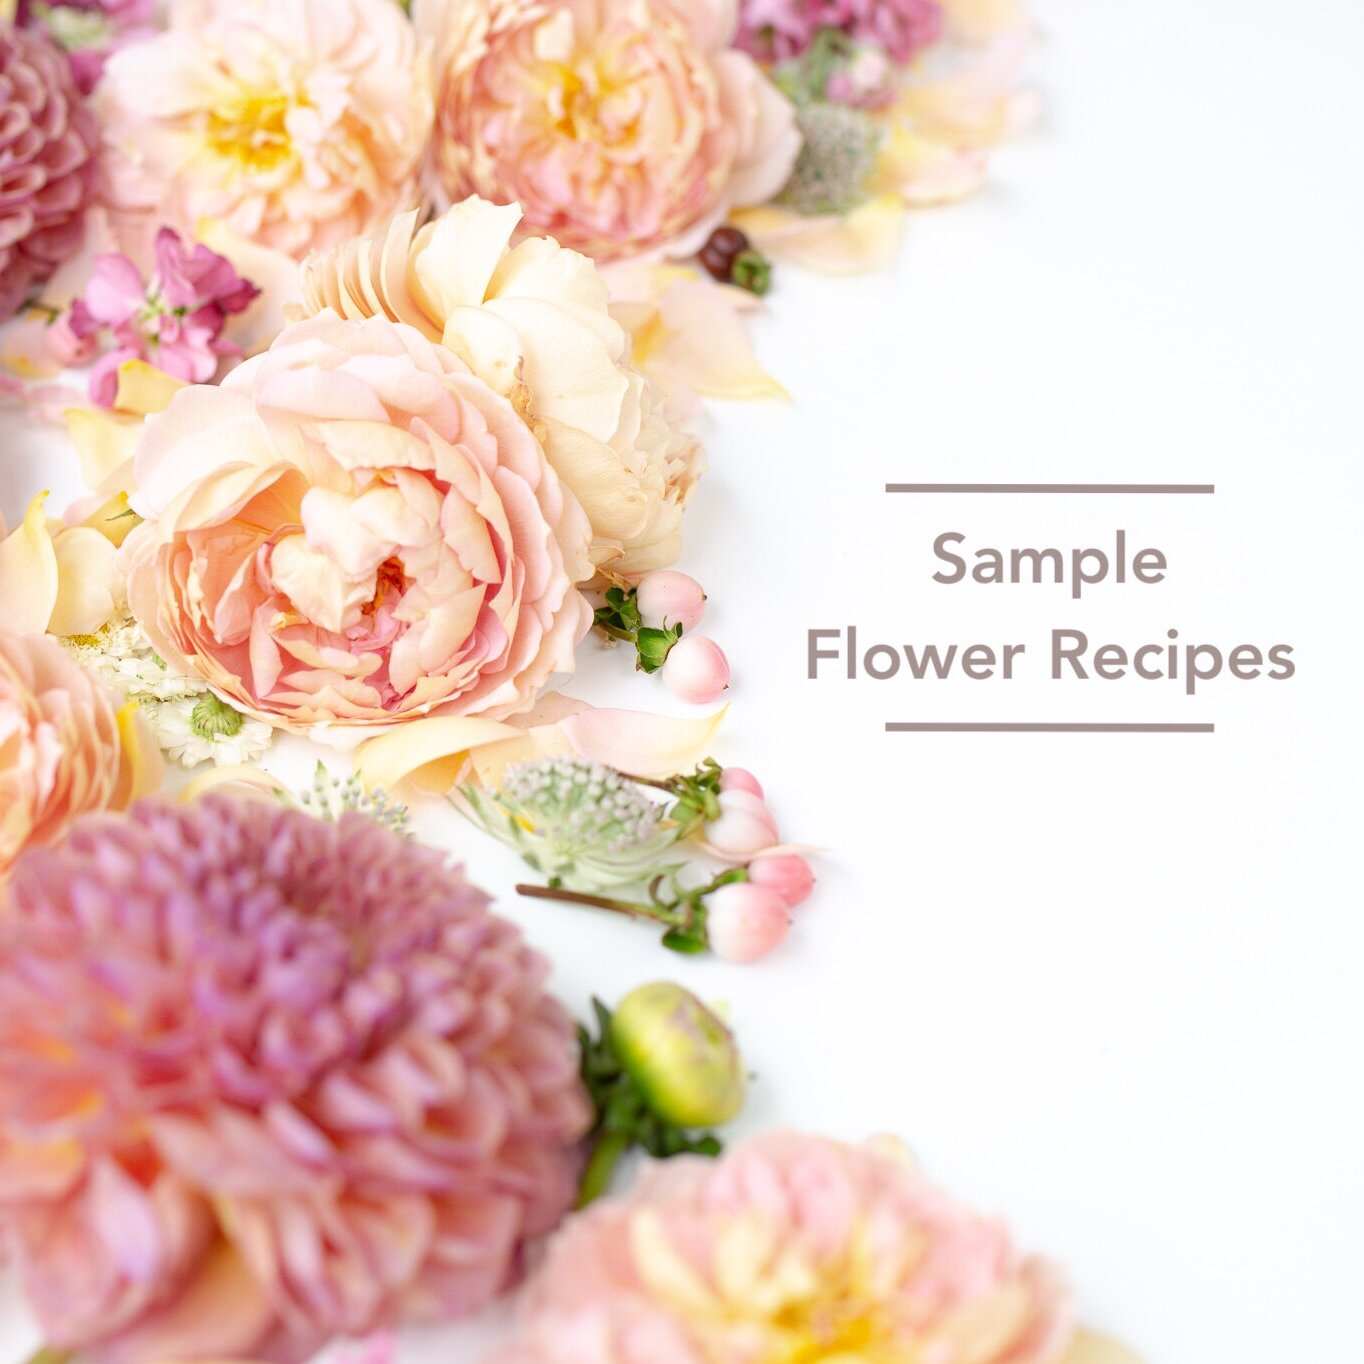 Customized flower recipes will be created for all Bloom Culture Clients. Here is an idea of what to expect. -